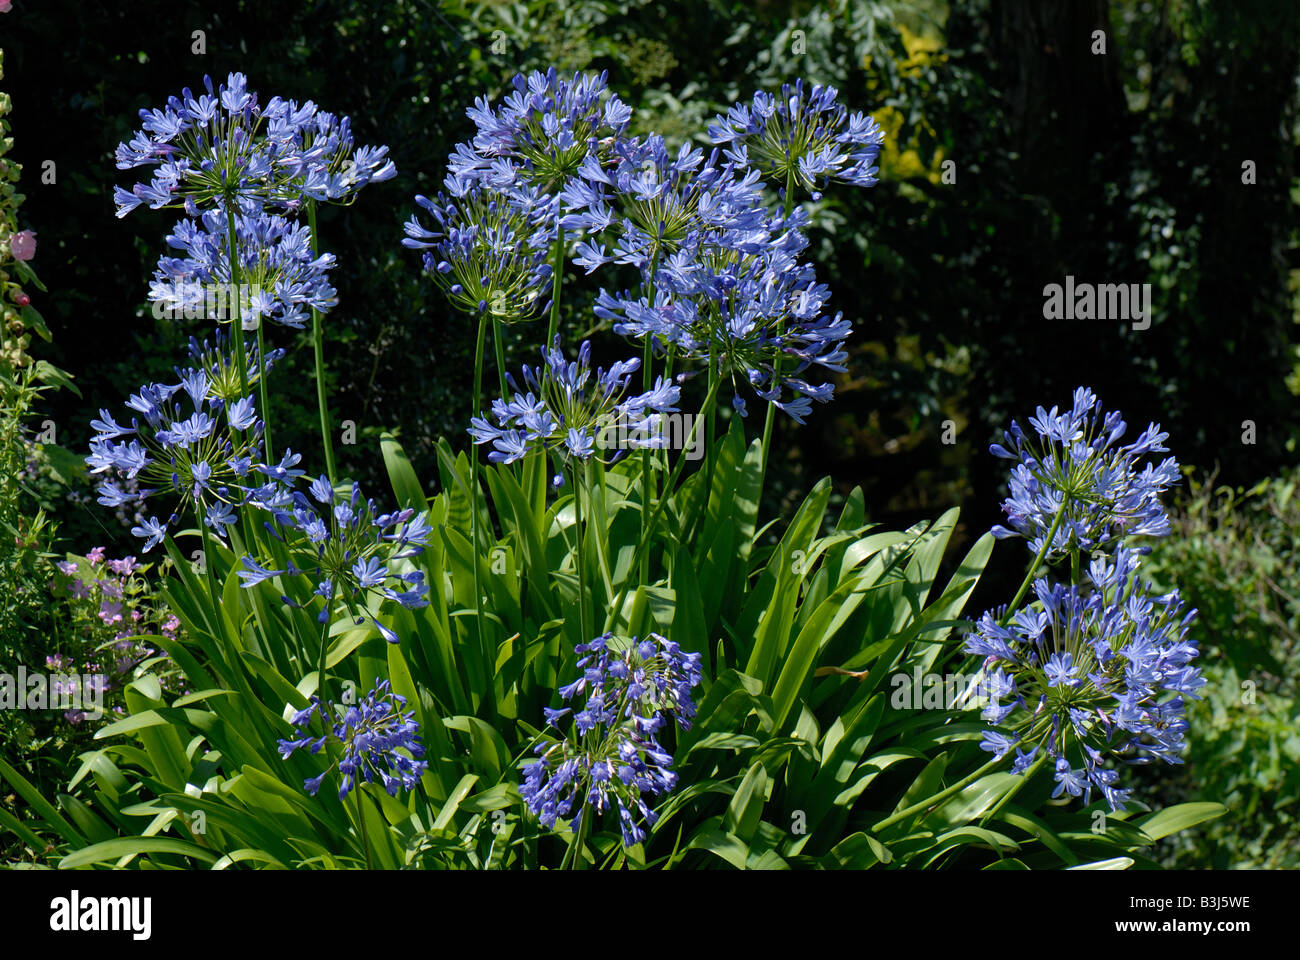 African blue lily Agapanthus africanus flowers back lit in a garden - Stock Image